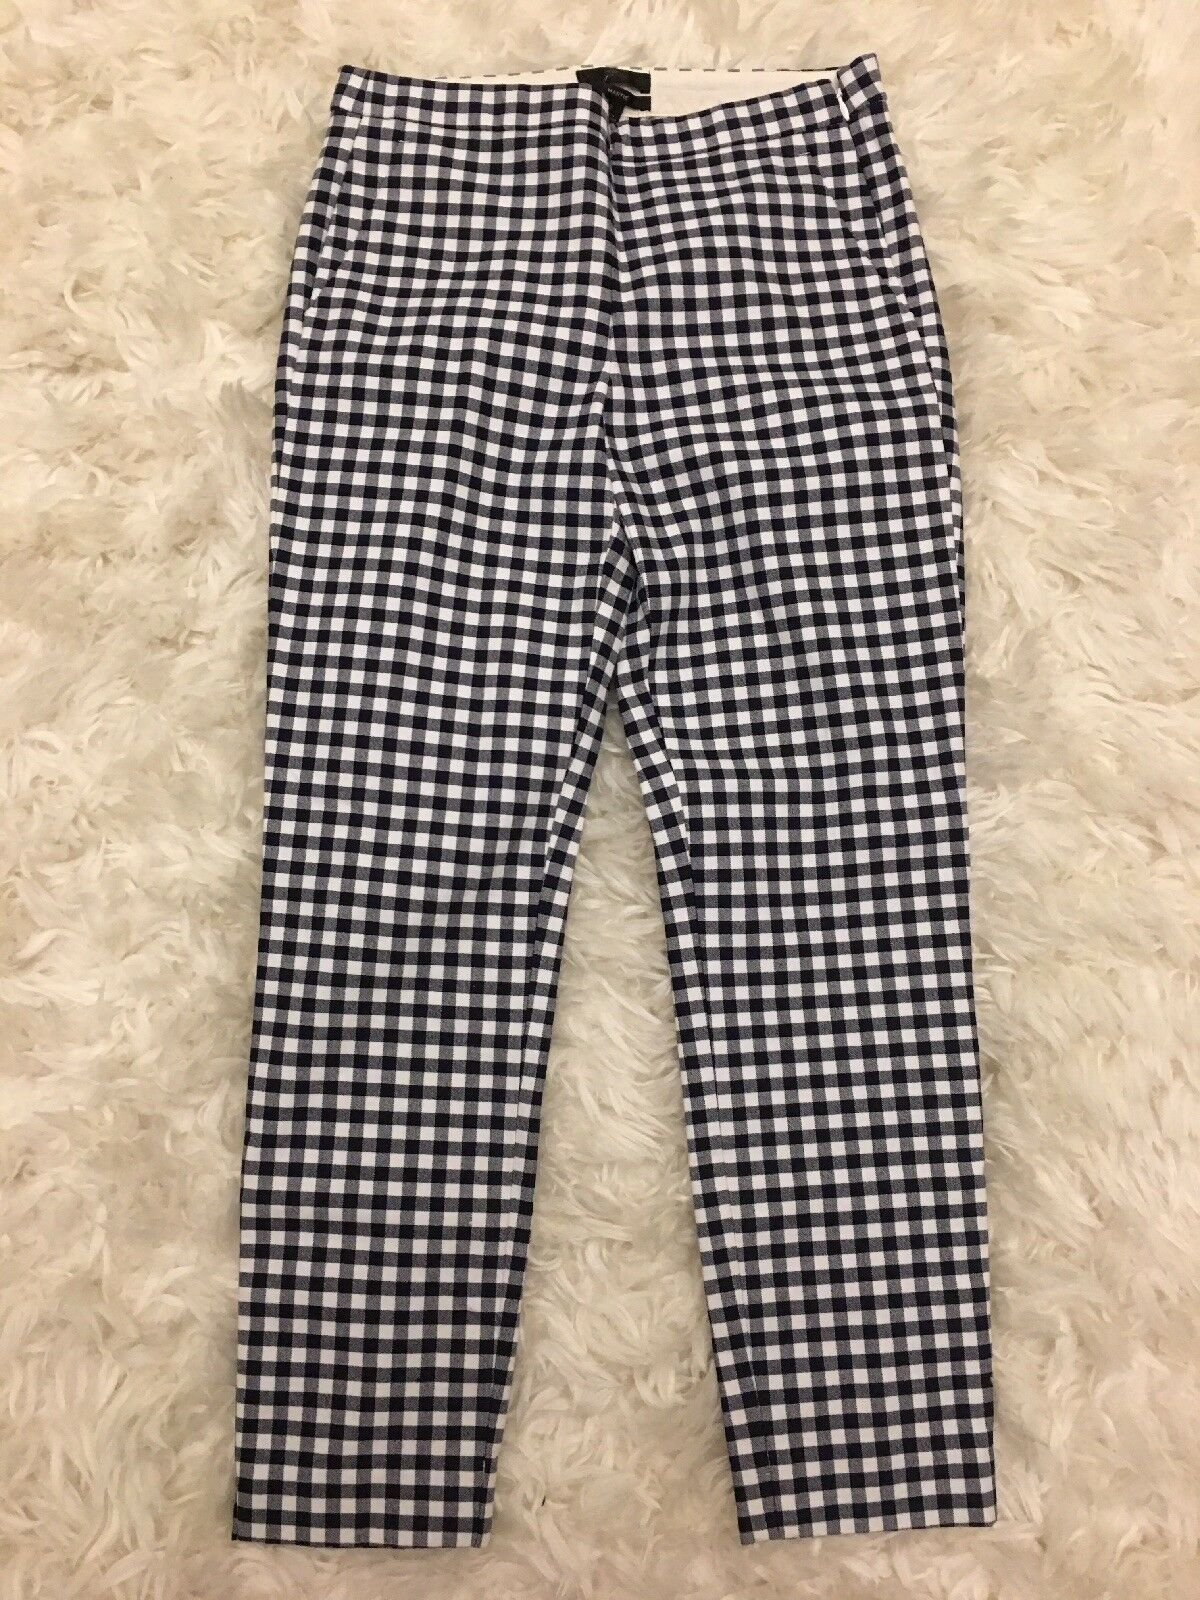 New J Crew Martie Pant in Gingham Navy Ivory Sz 2 E9564